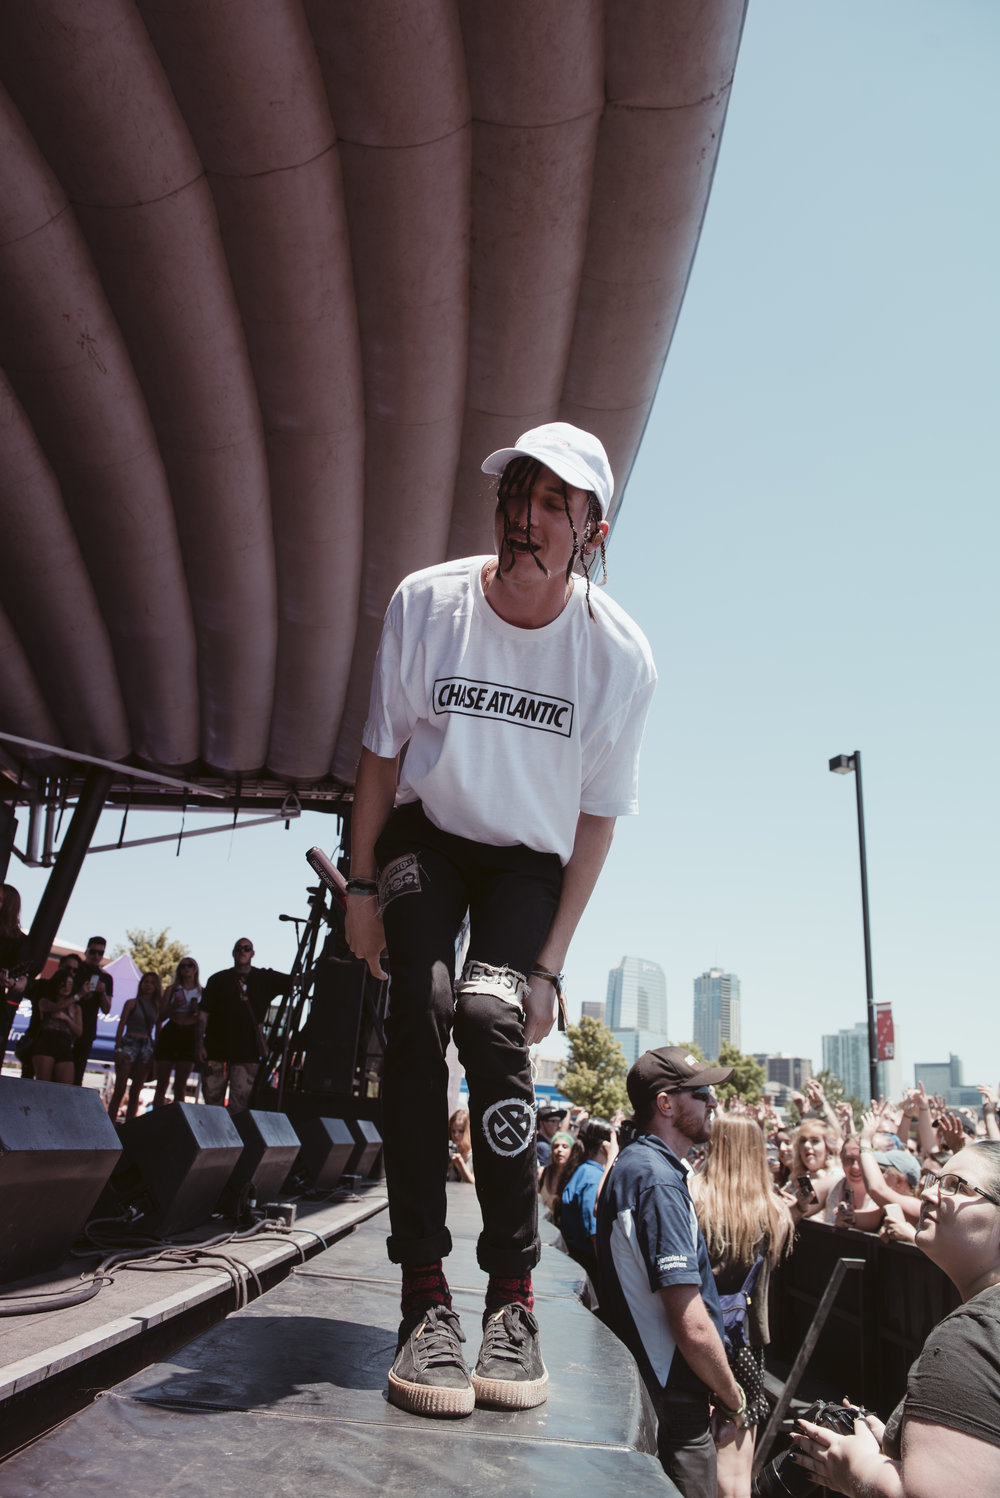 Chase Atlantic-7 copy.jpg